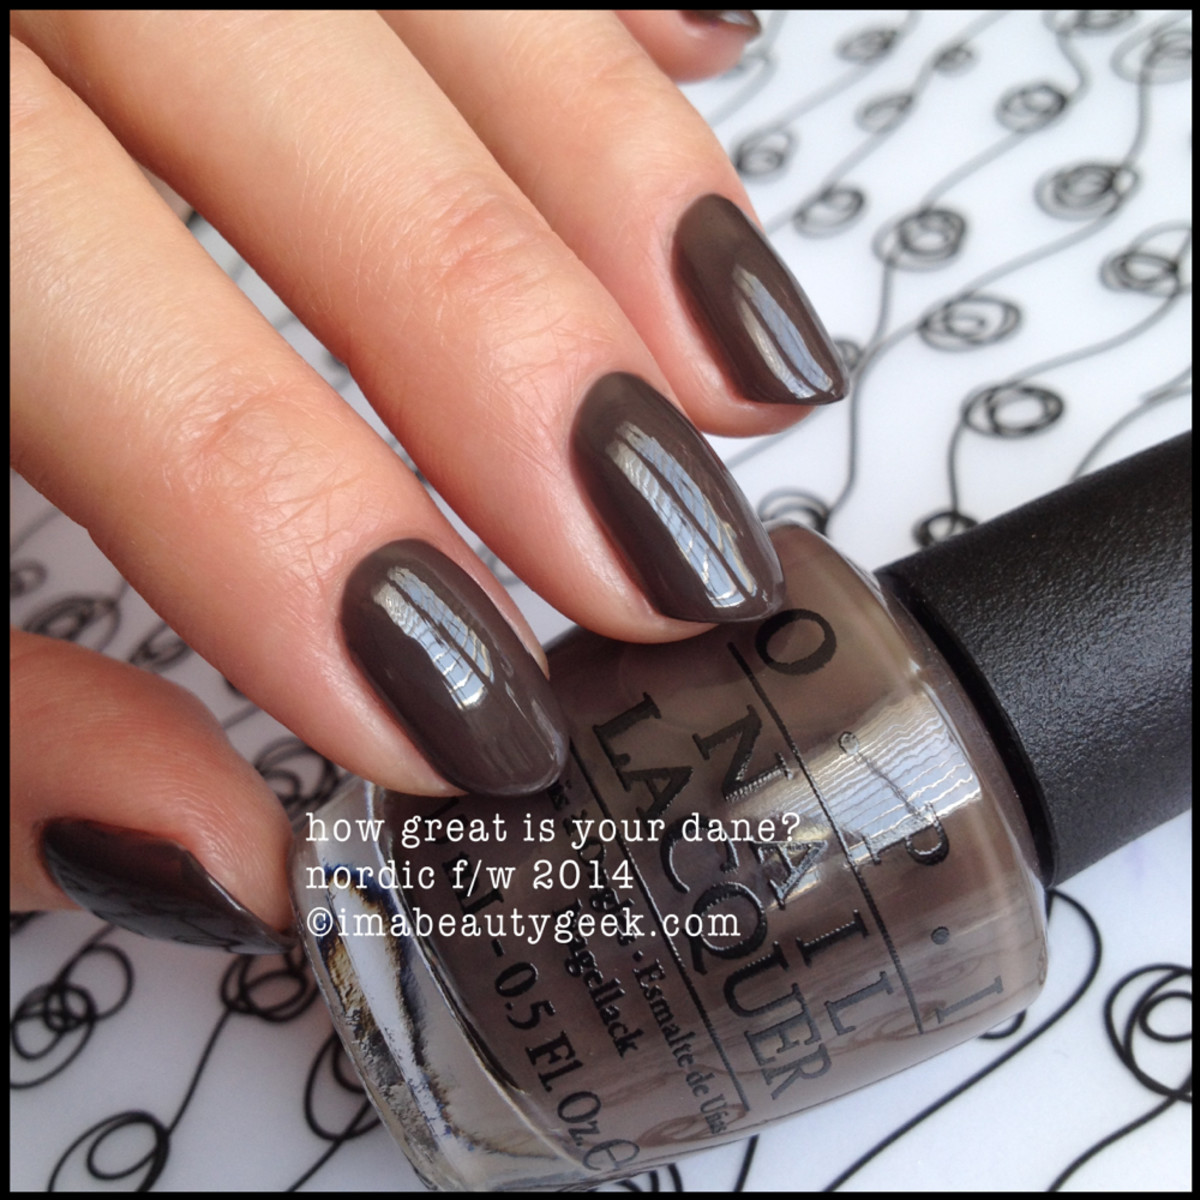 opi nordic how great is your dane?